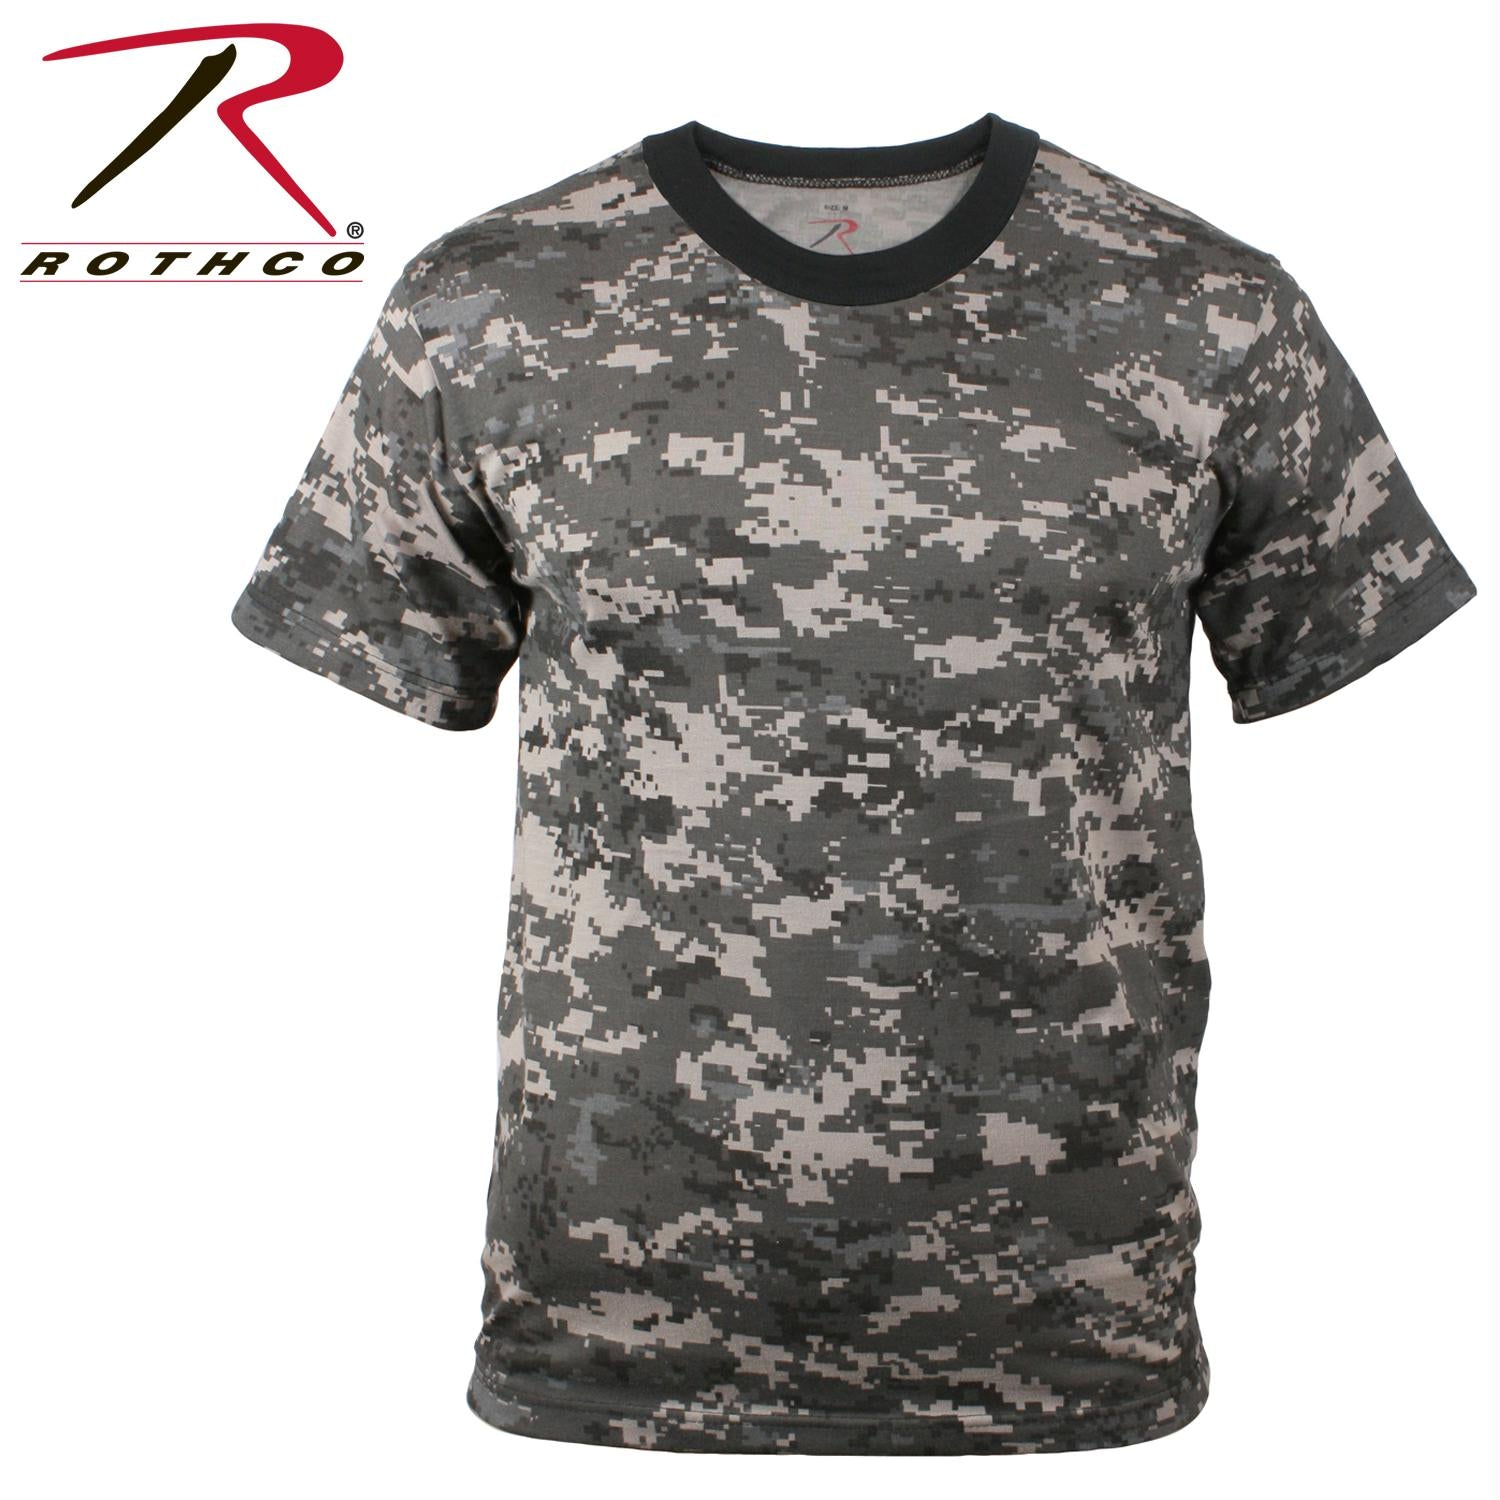 Rothco Kids Digital Camo T-Shirt - Subdued Urban Digital Camo / XS